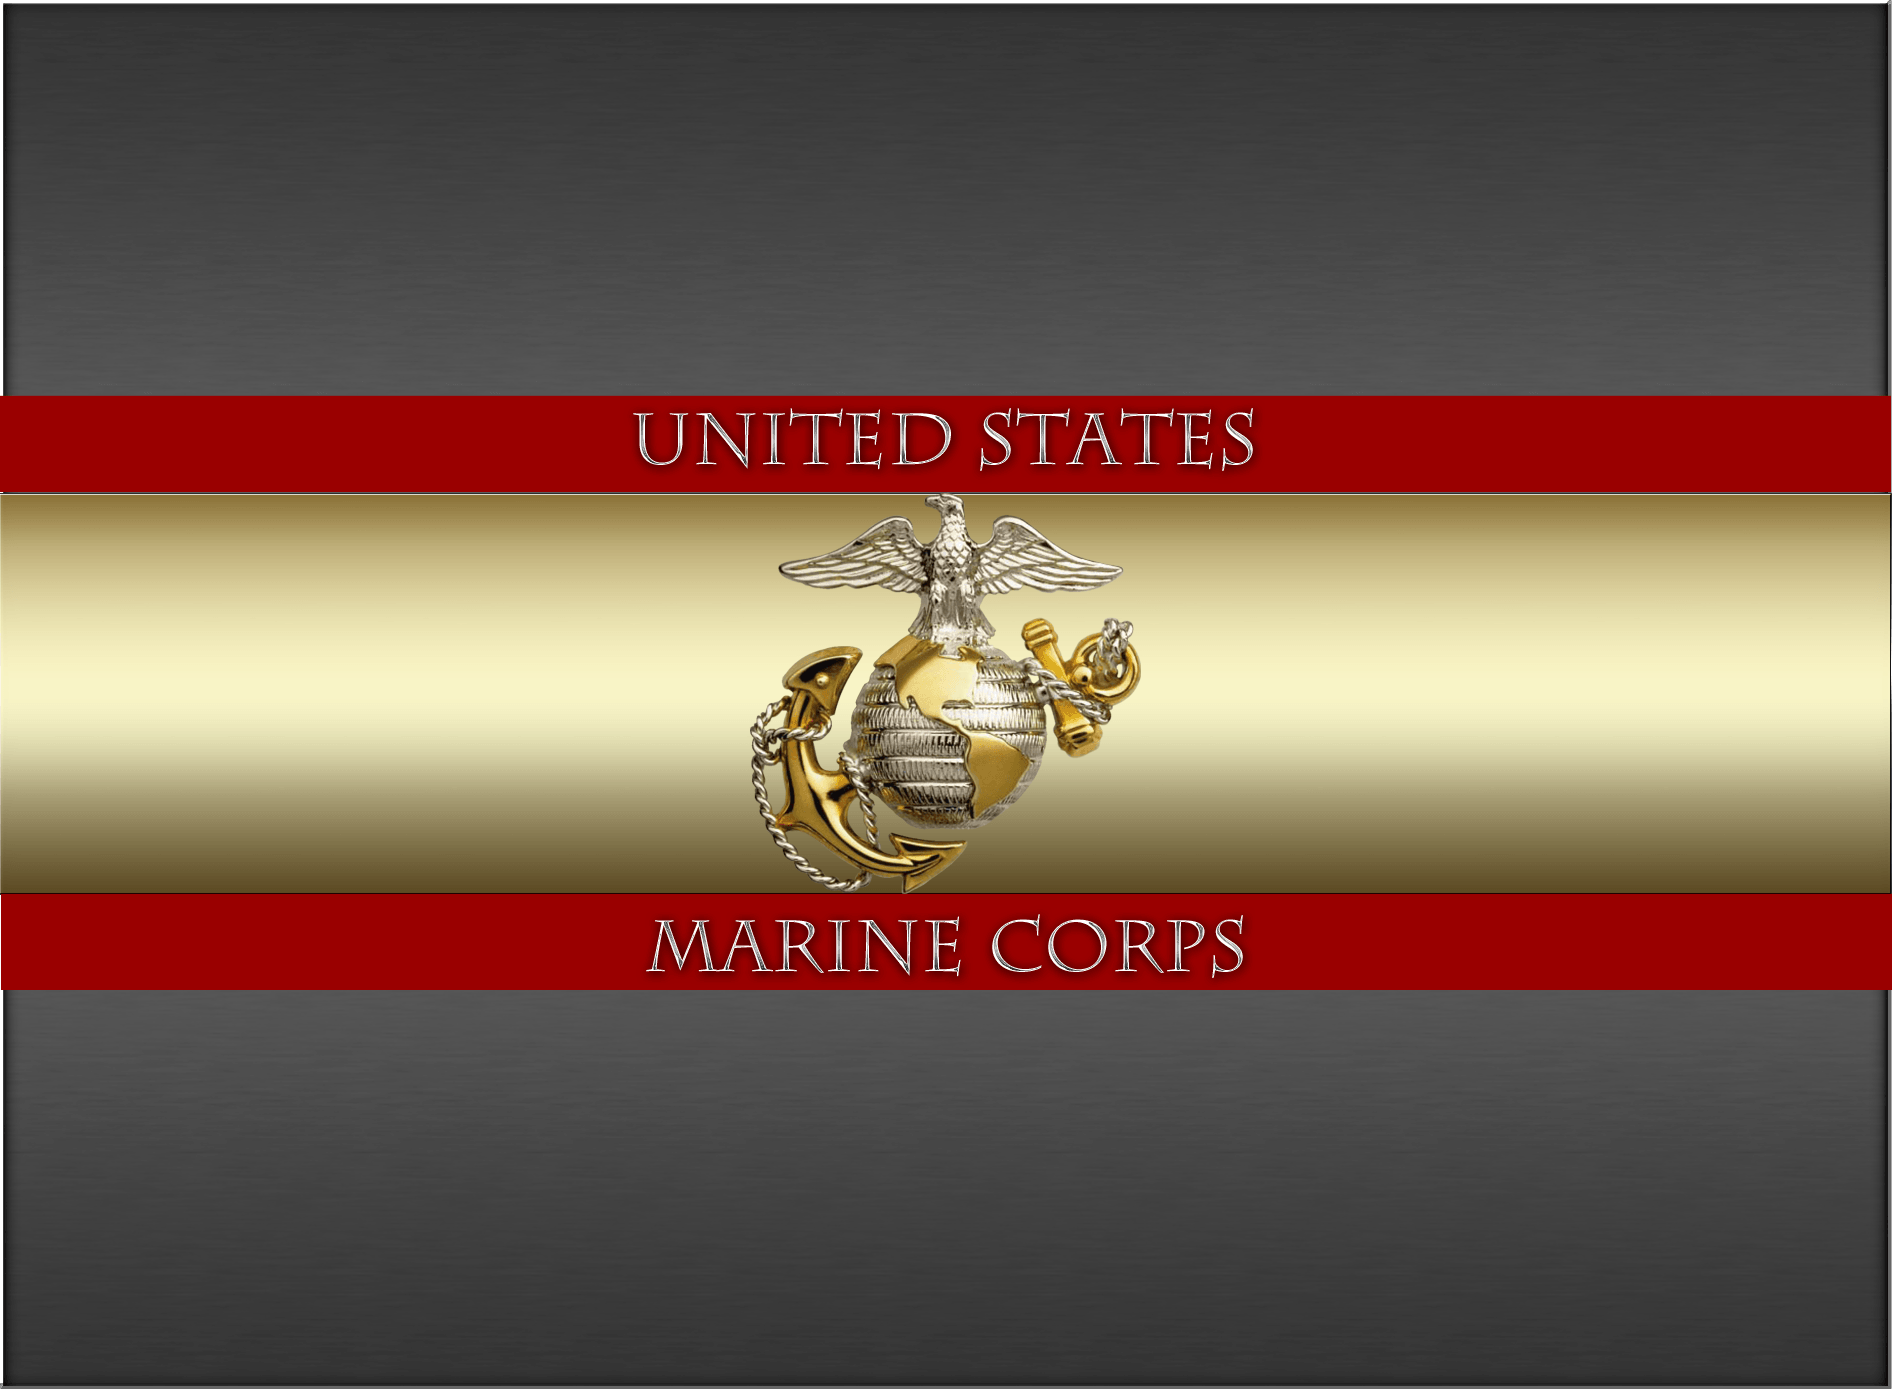 United States Marine Corps Wallpapers 1892x1389